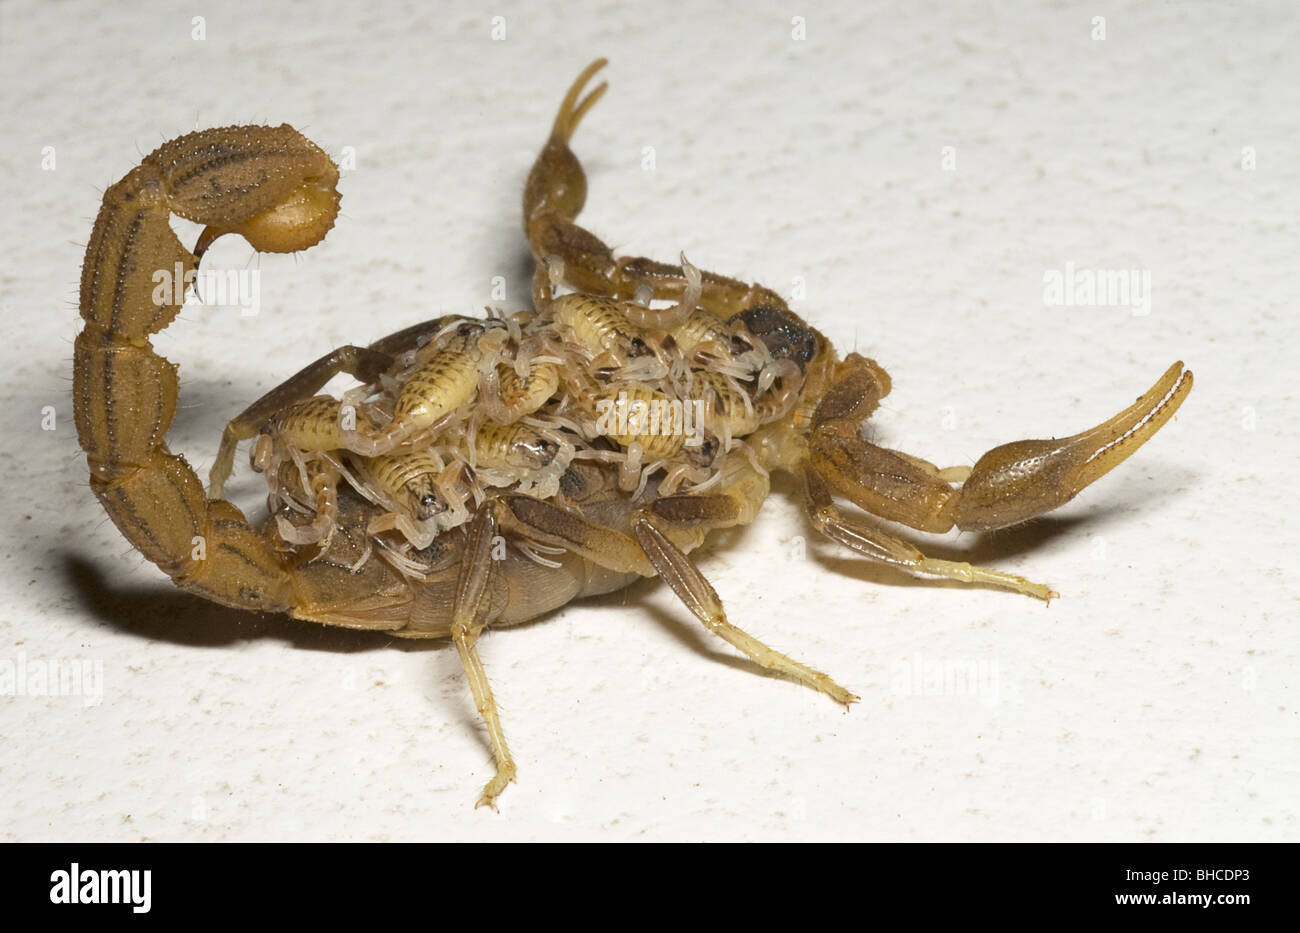 Hottentota scorpion, carrying its young, photographed in Tanzania, Africa - Stock Image